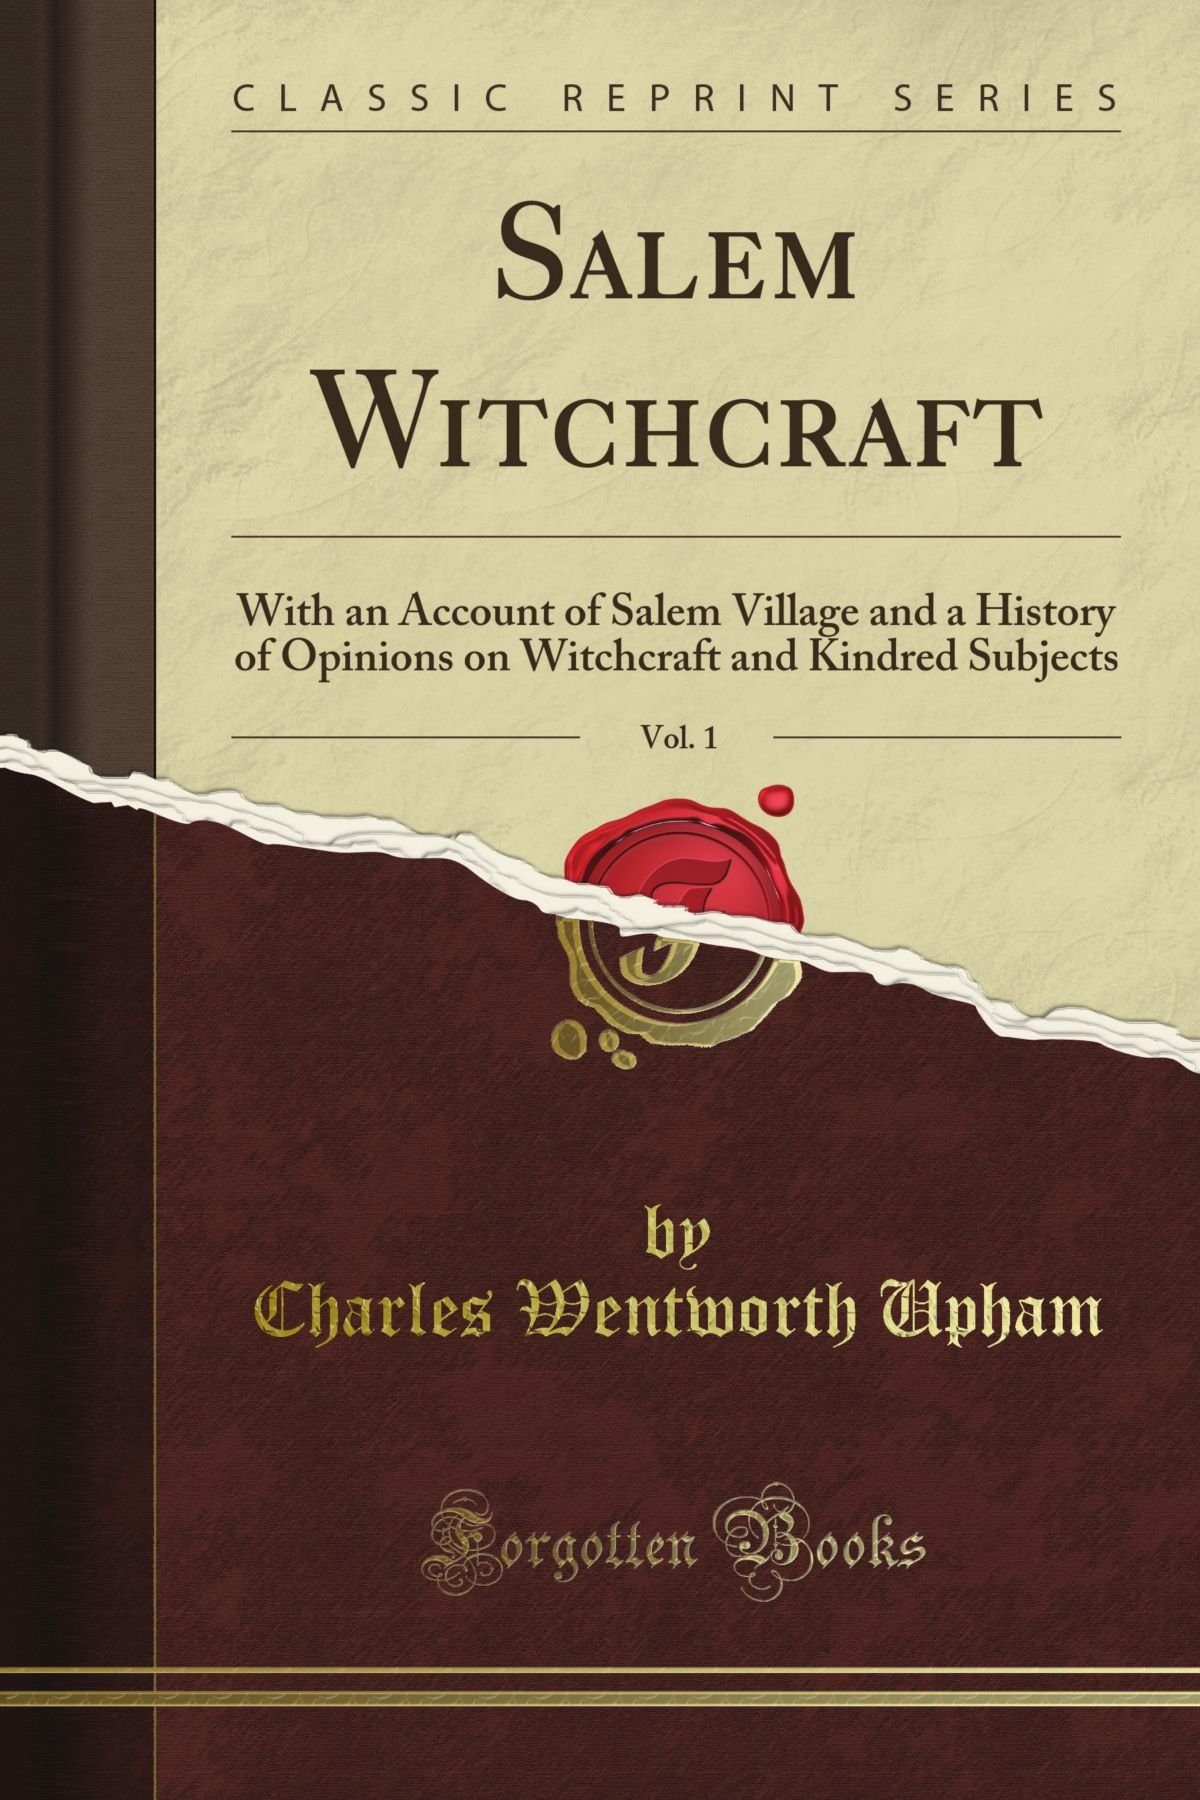 Read Online Salem Witchcraft, Vol. 1: With an Account of Salem Village and a History of Opinions on Witchcraft and Kindred Subjects (Classic Reprint) PDF